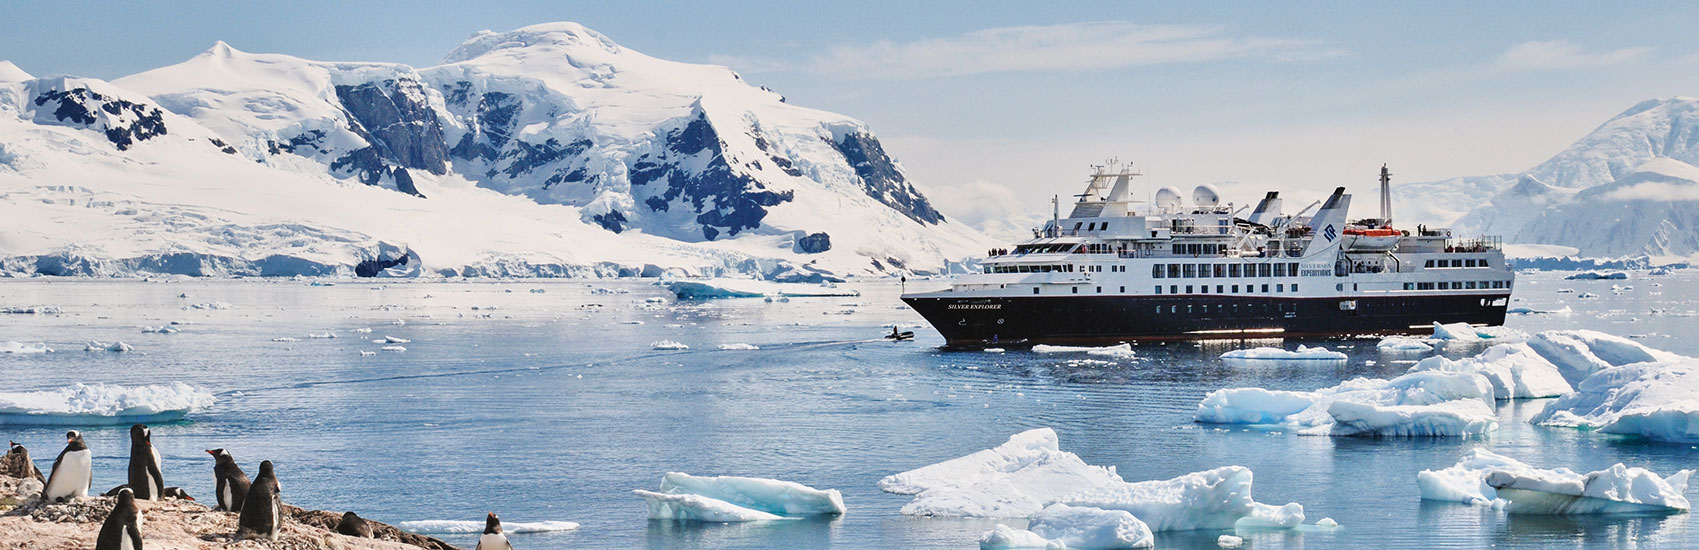 All-Inclusive Antarctica Experience with Silversea Cruises 0